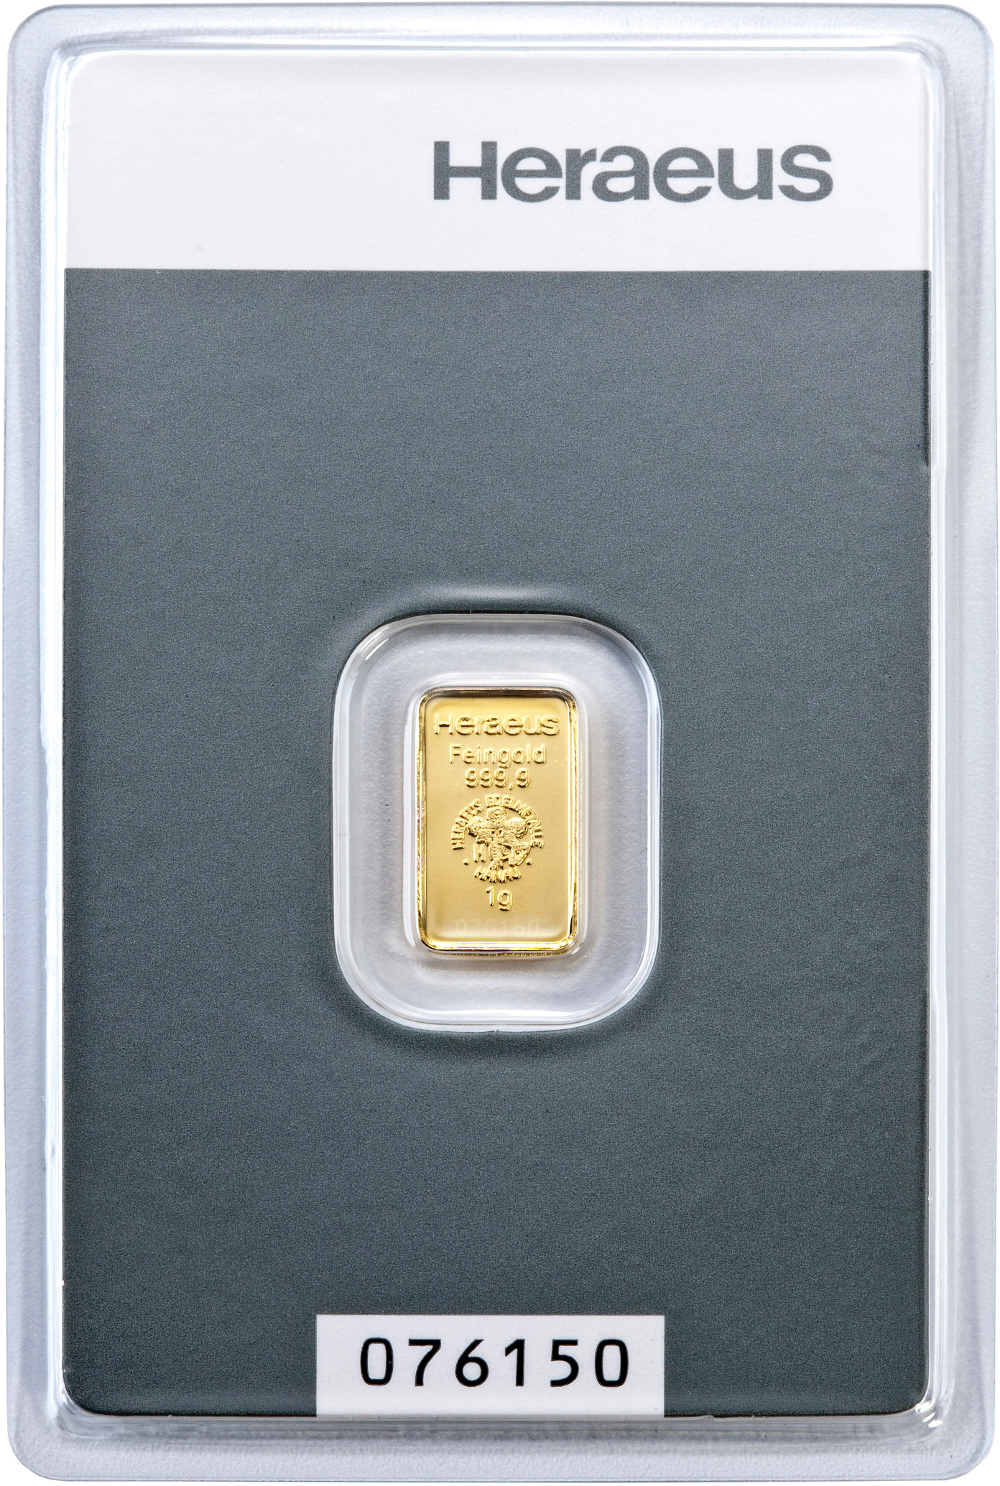 1g Heraeus Gold Bars Bullionbypost From 163 39